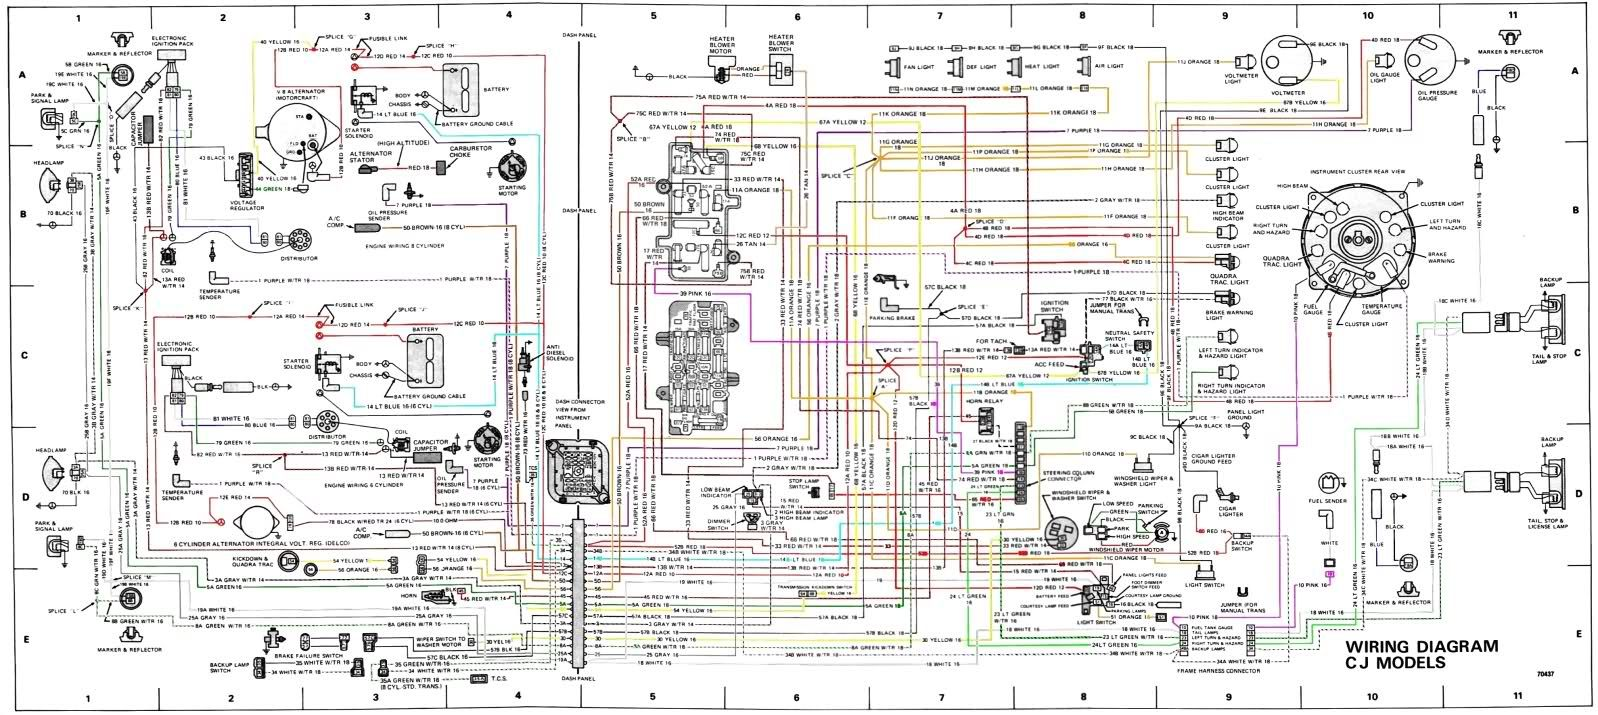 Cj7 Wiring Harness Diagram - M7 Wiring Diagram on